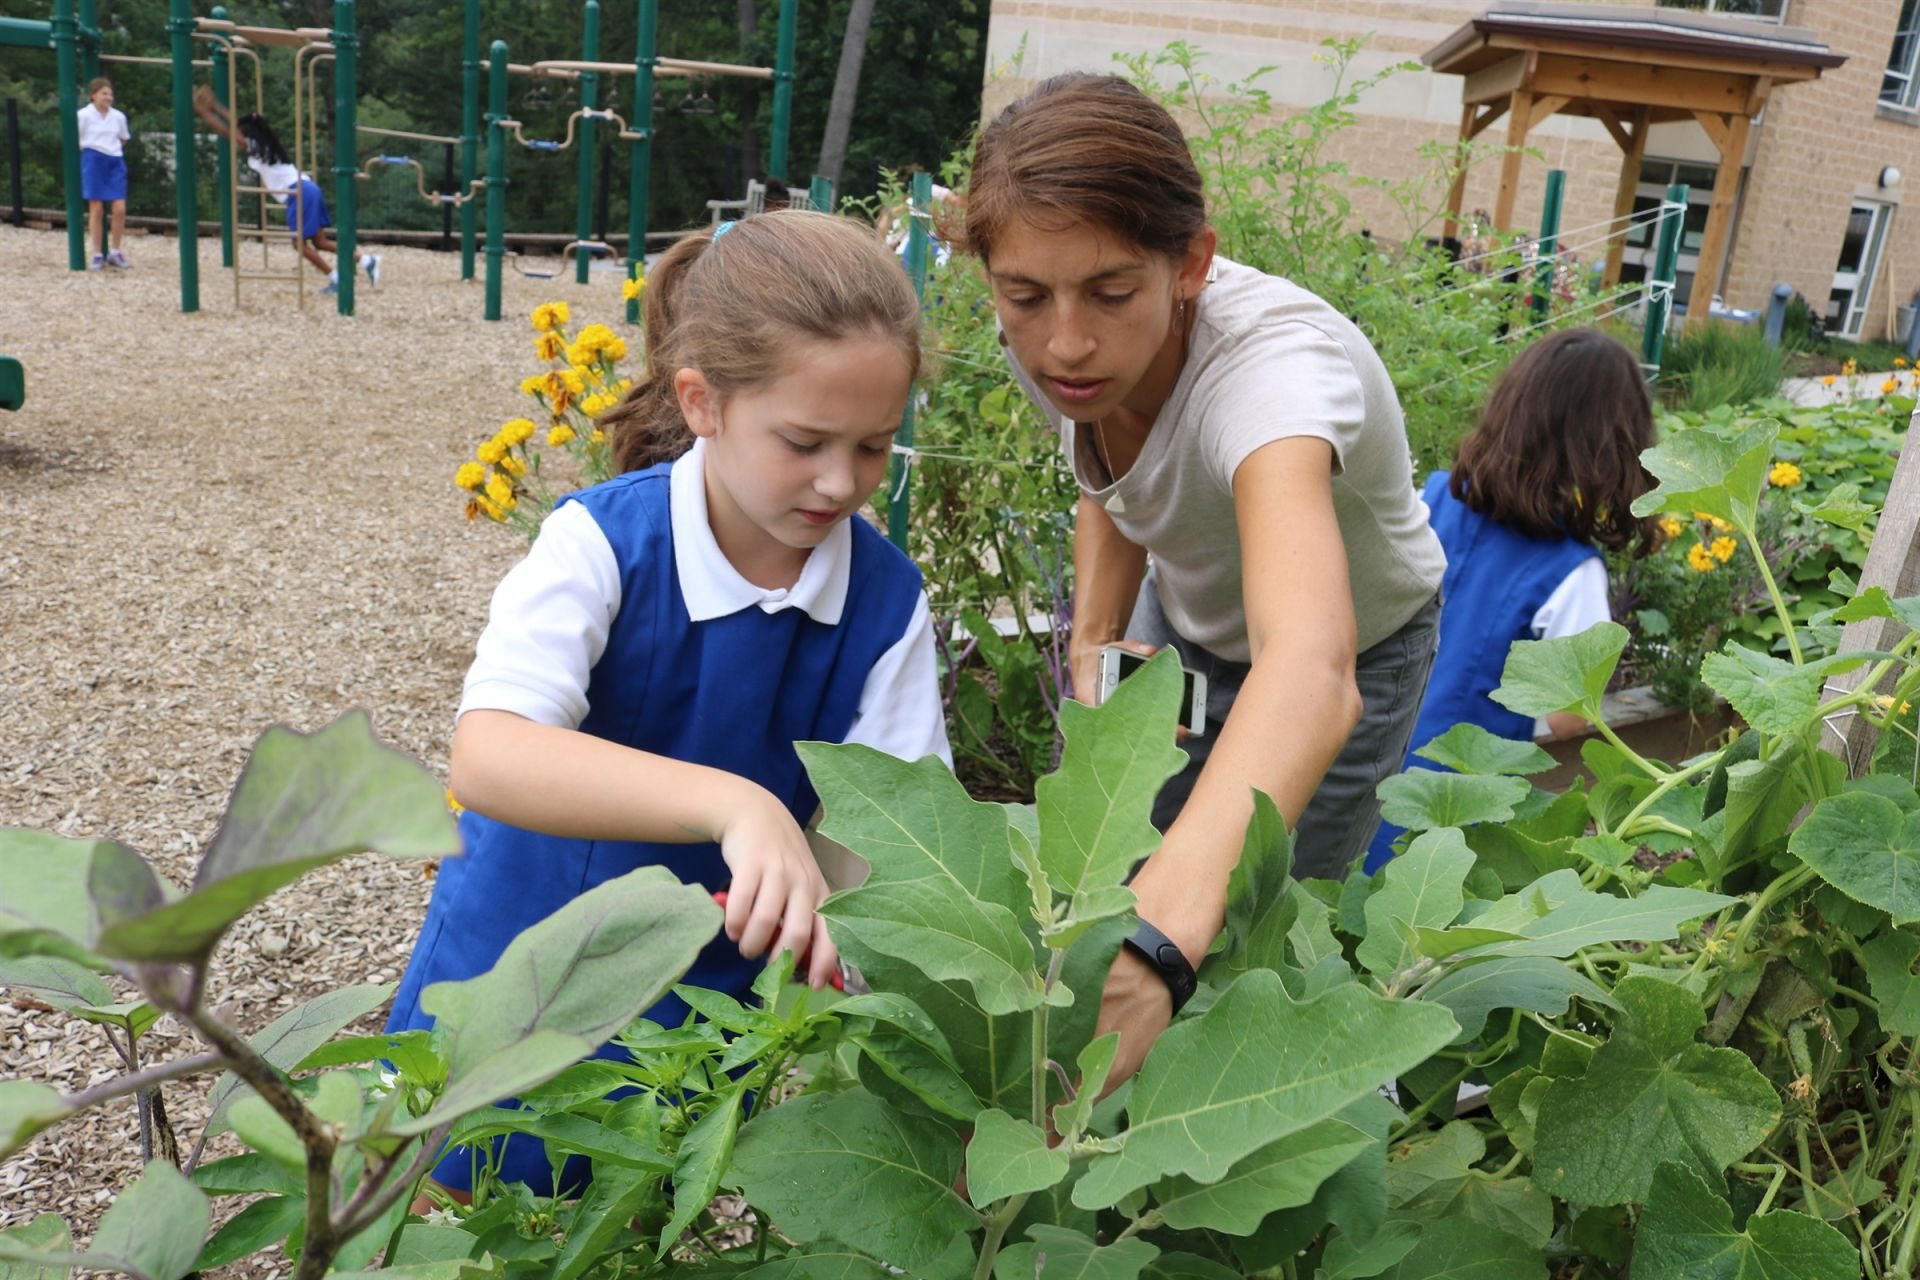 The Lower School is preparing for their annual fall feast by harvesting vegetables and herbs that were planted by students last February in the Webb Centennial Courtyard, one of our six gardens here on campus! Vegetables and herbs harvested include squash, tomatoes, cucumbers, peppers, holy basil, eggplants, mint, rosemary, hibiscus and ground cherries! The students learn about the process of gardening and harvesting. They then learn how to prepare the fresh vegetables and herbs to create delicious and healthy meals.